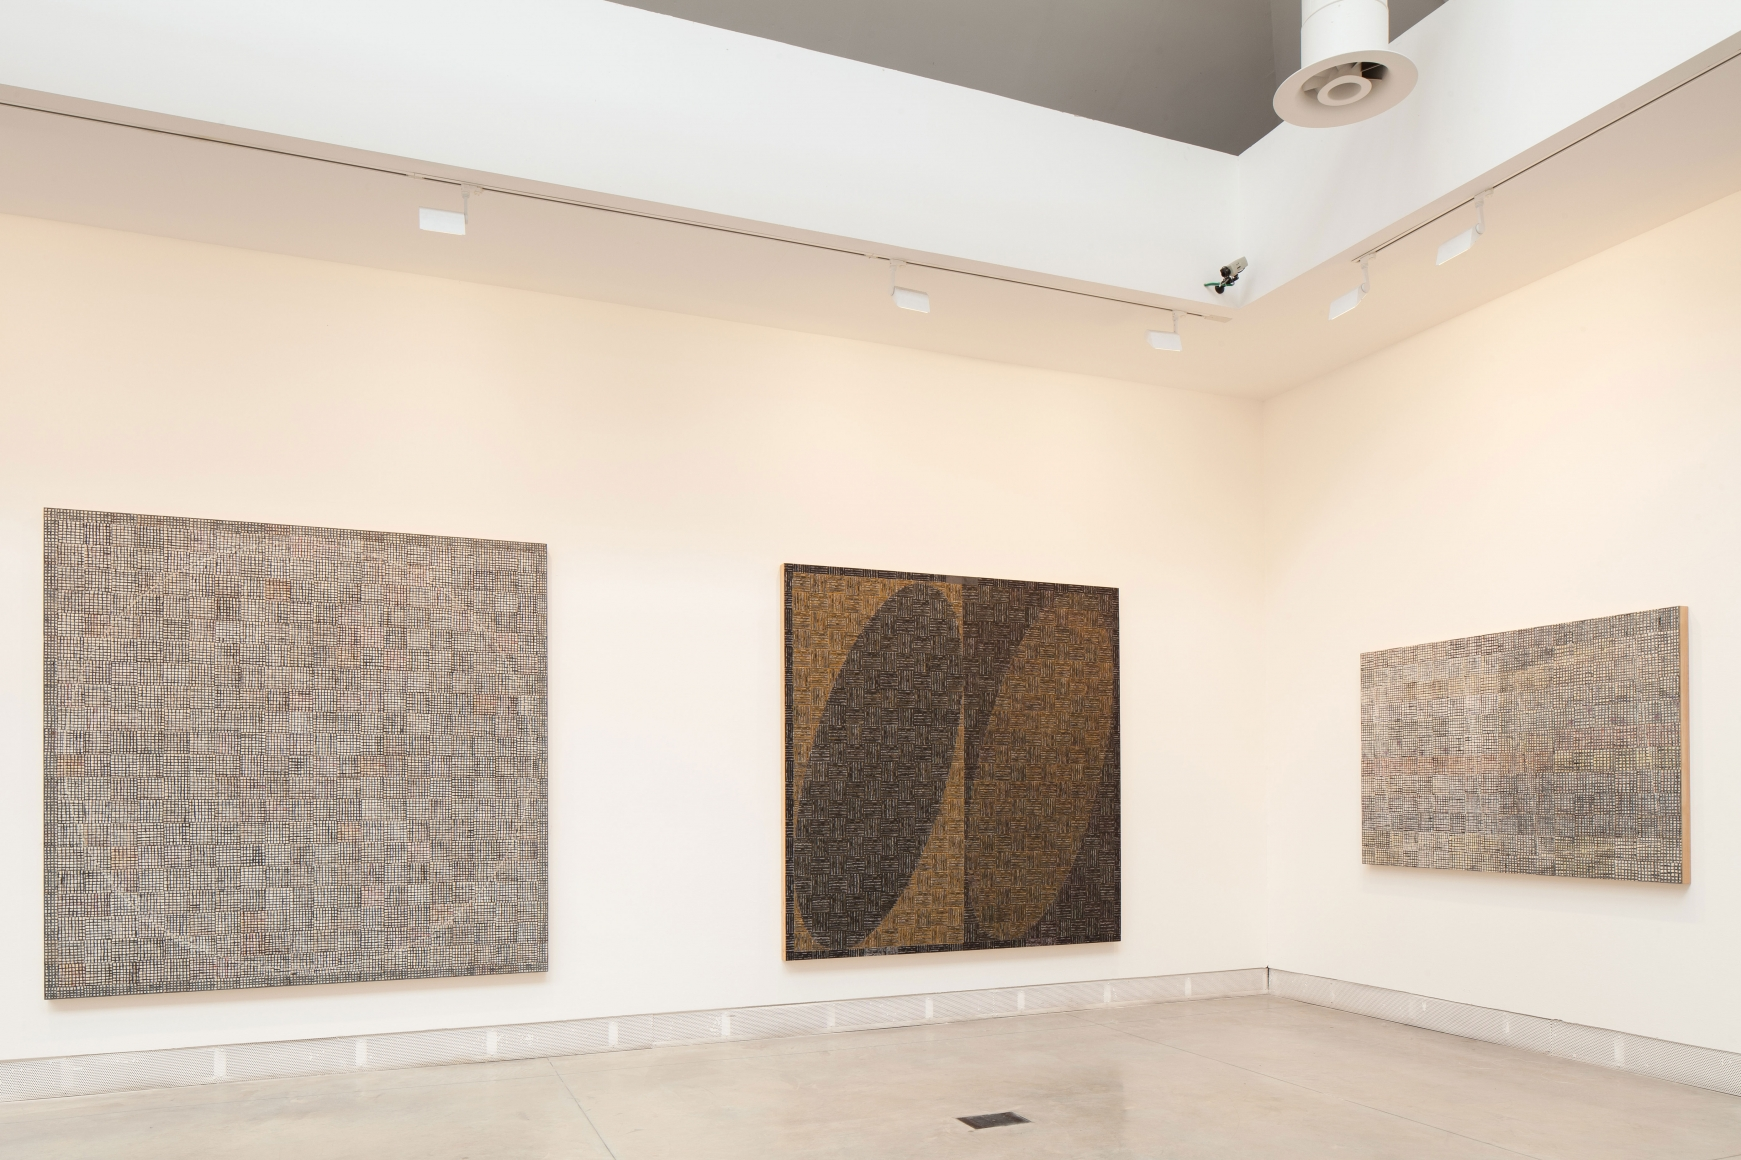 MCARTHUR BINION, Installation view